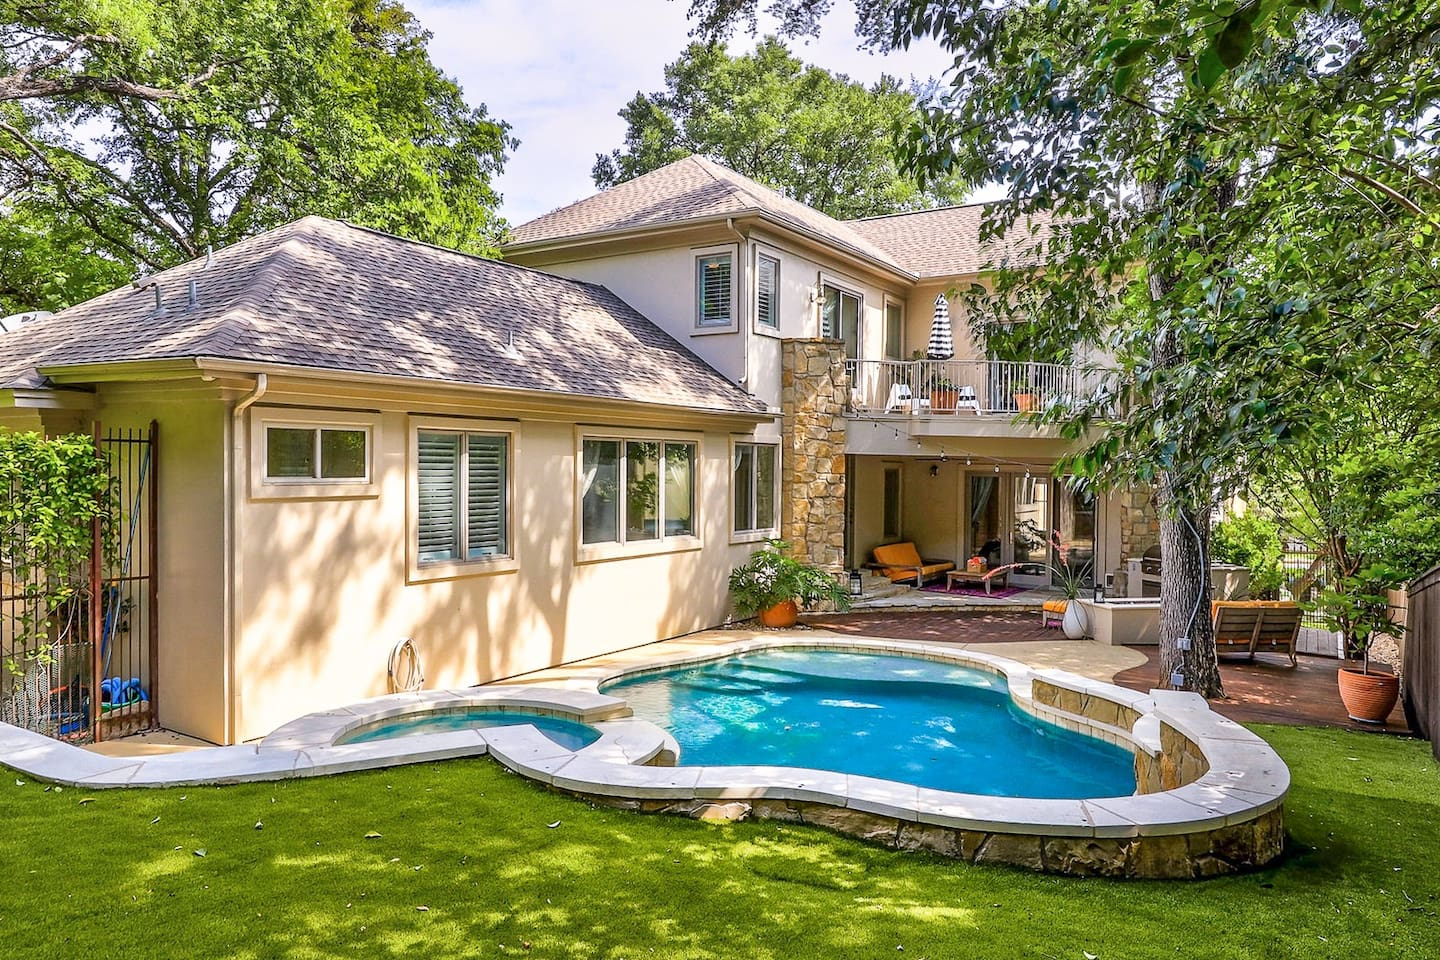 Enjoy luxury amenities such as a sparkling pool, hot tub, home theater, and MORE at this 5BR home tucked away in a peaceful neighborhood just minutes away from downtown.